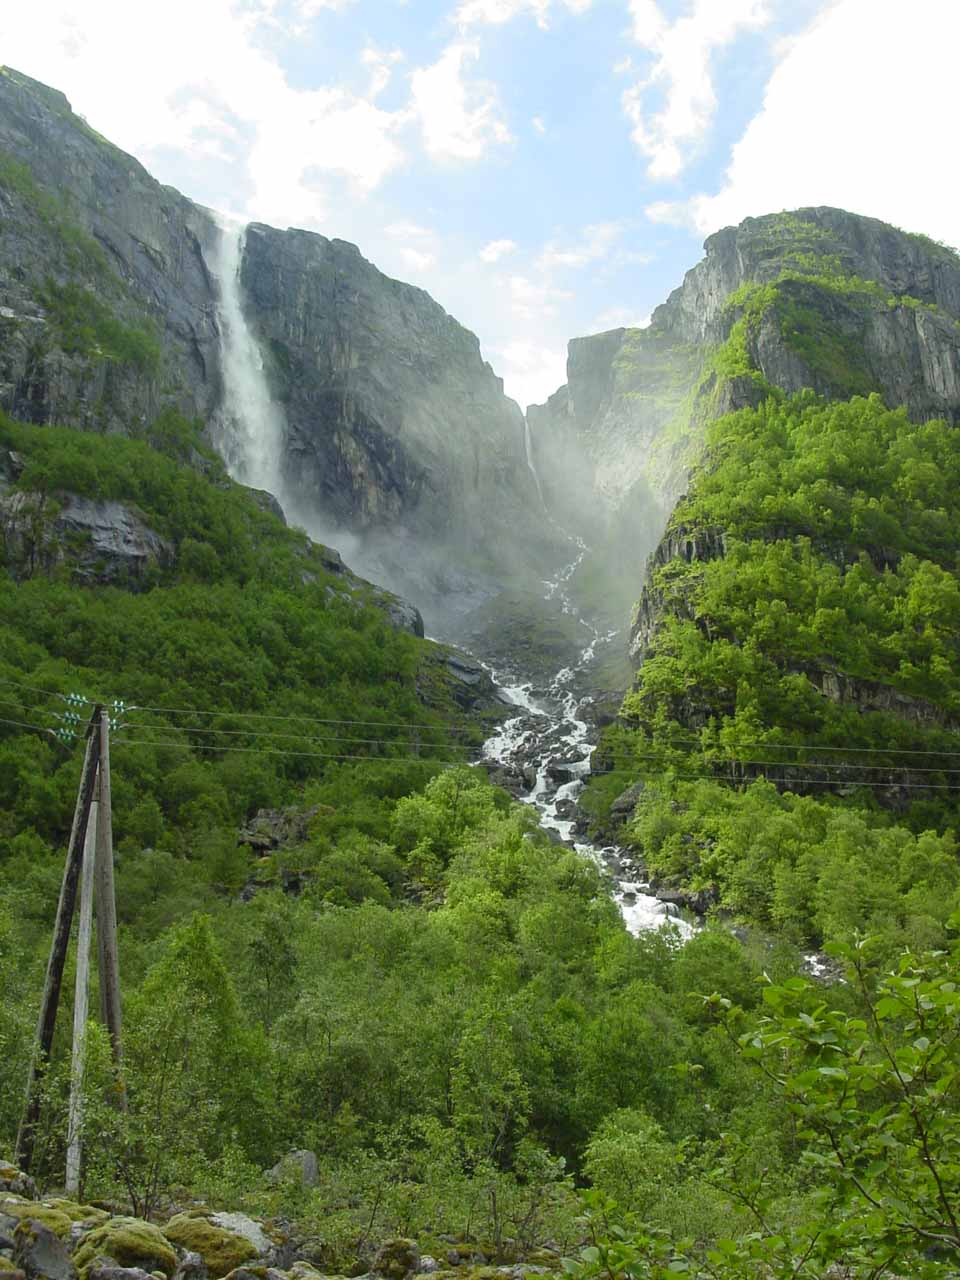 Another look at Skykkjedalsfossen from the road